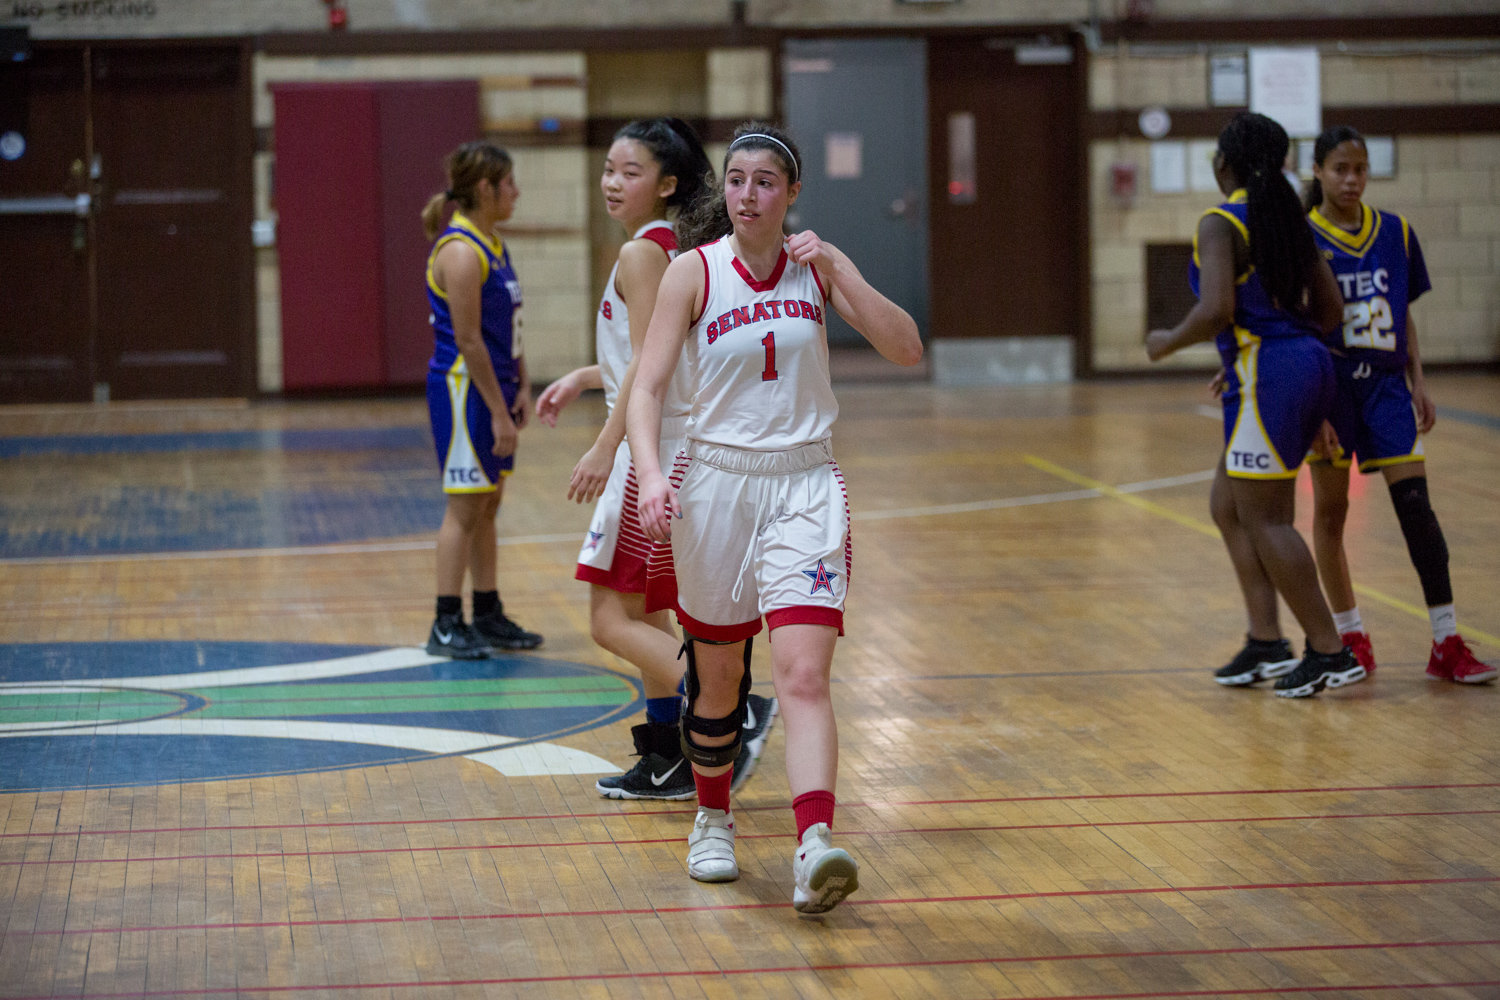 American Studies senior Jackie Harari makes her triumphant return to the basketball court with a 14-point performance over Taft.